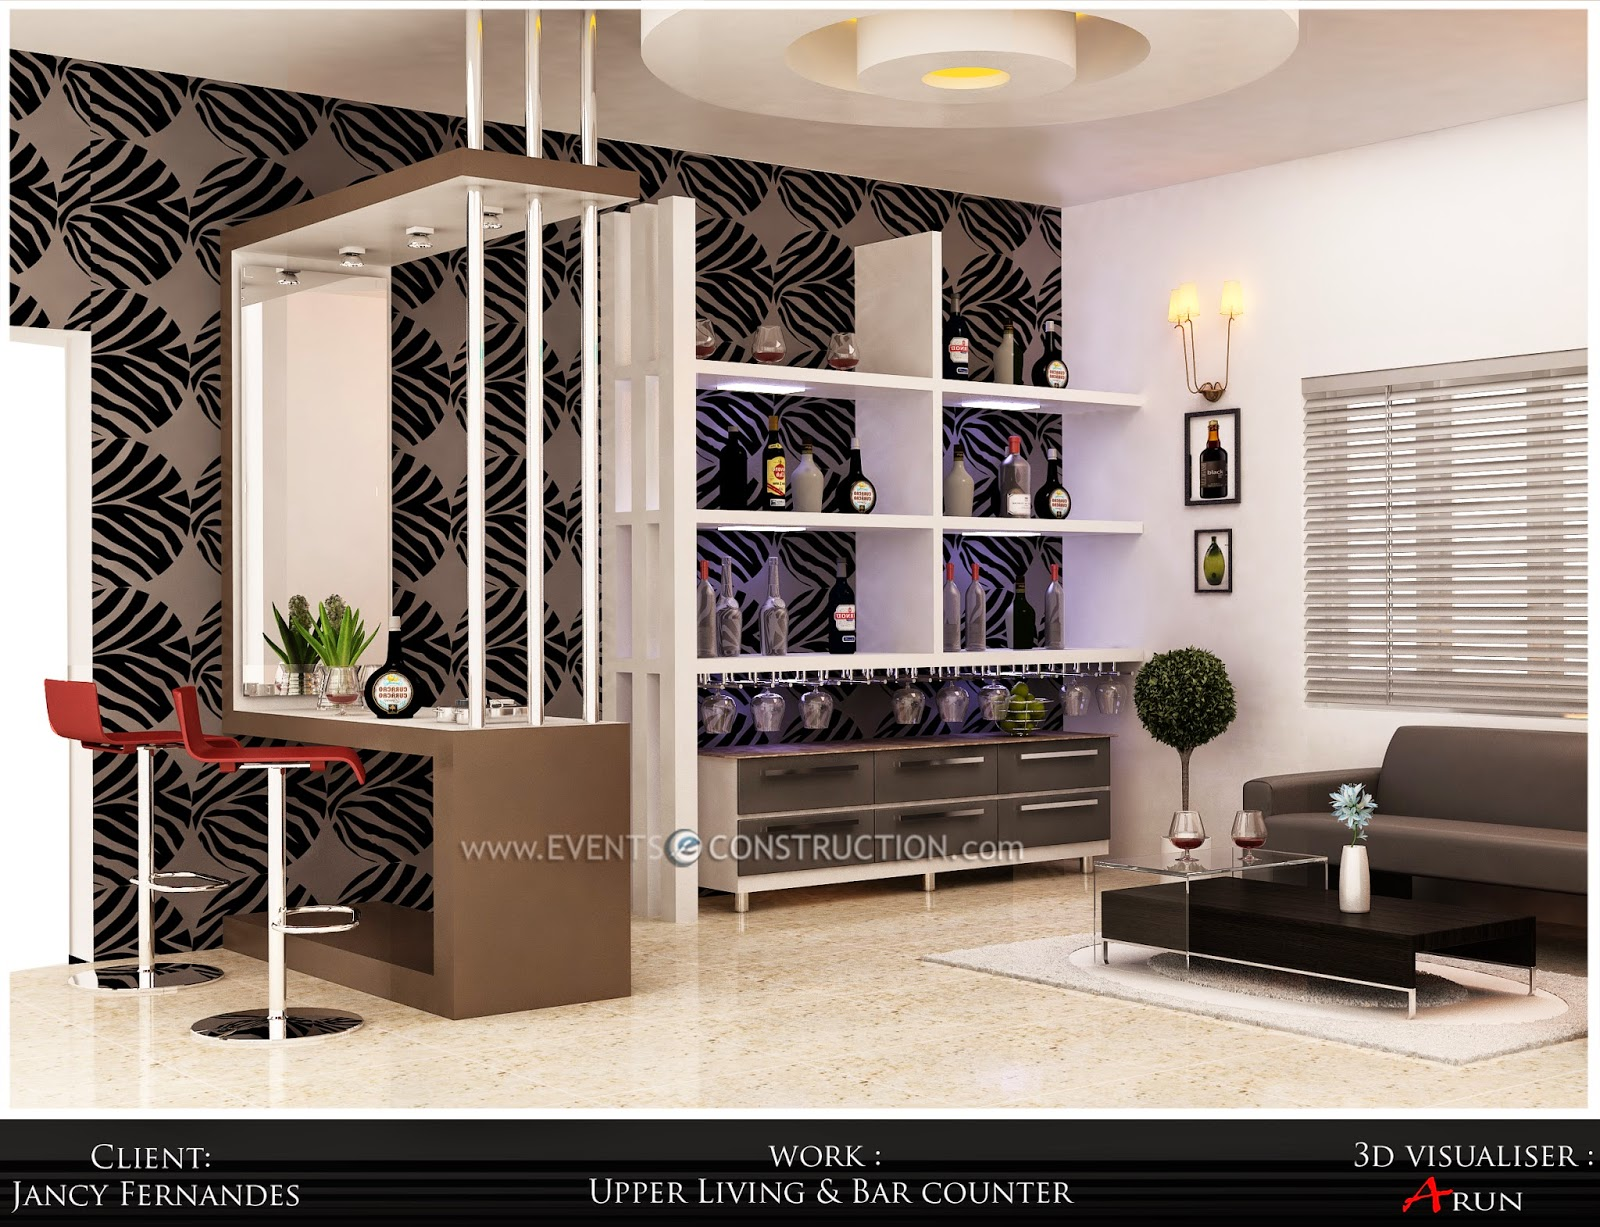 Evens Construction Pvt Ltd Upper living room and bar counter